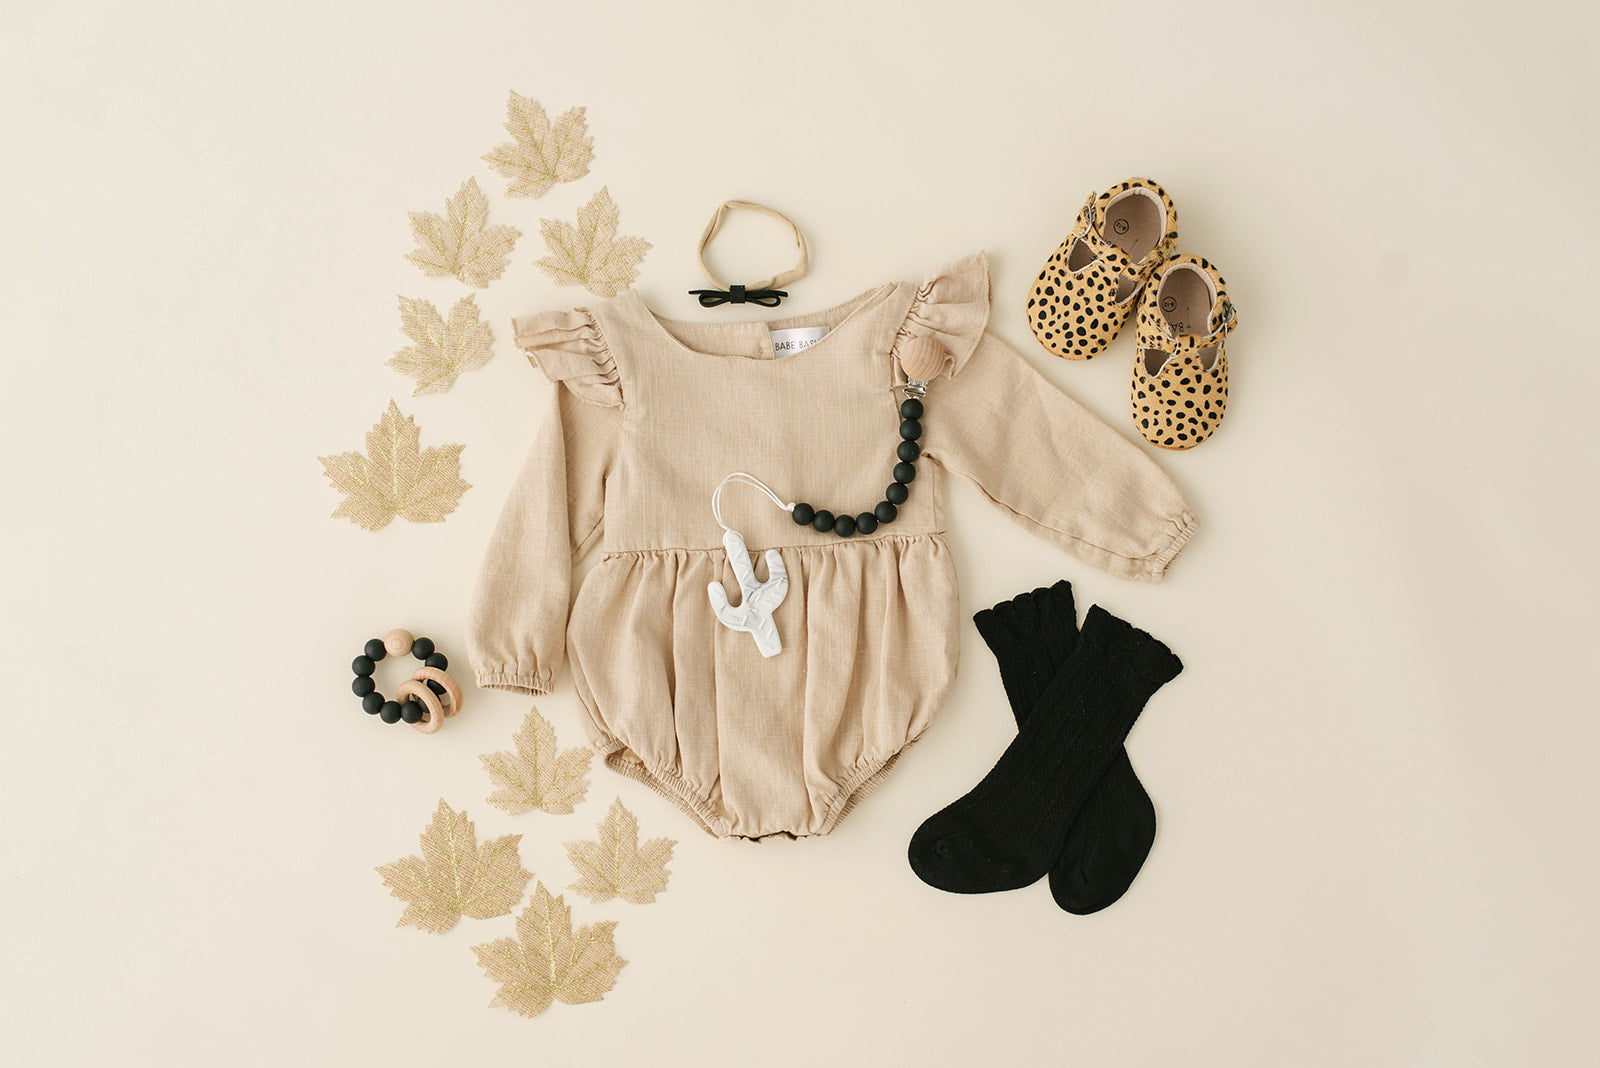 Thanksgiving Outfit Ideas for Babies and Toddlers